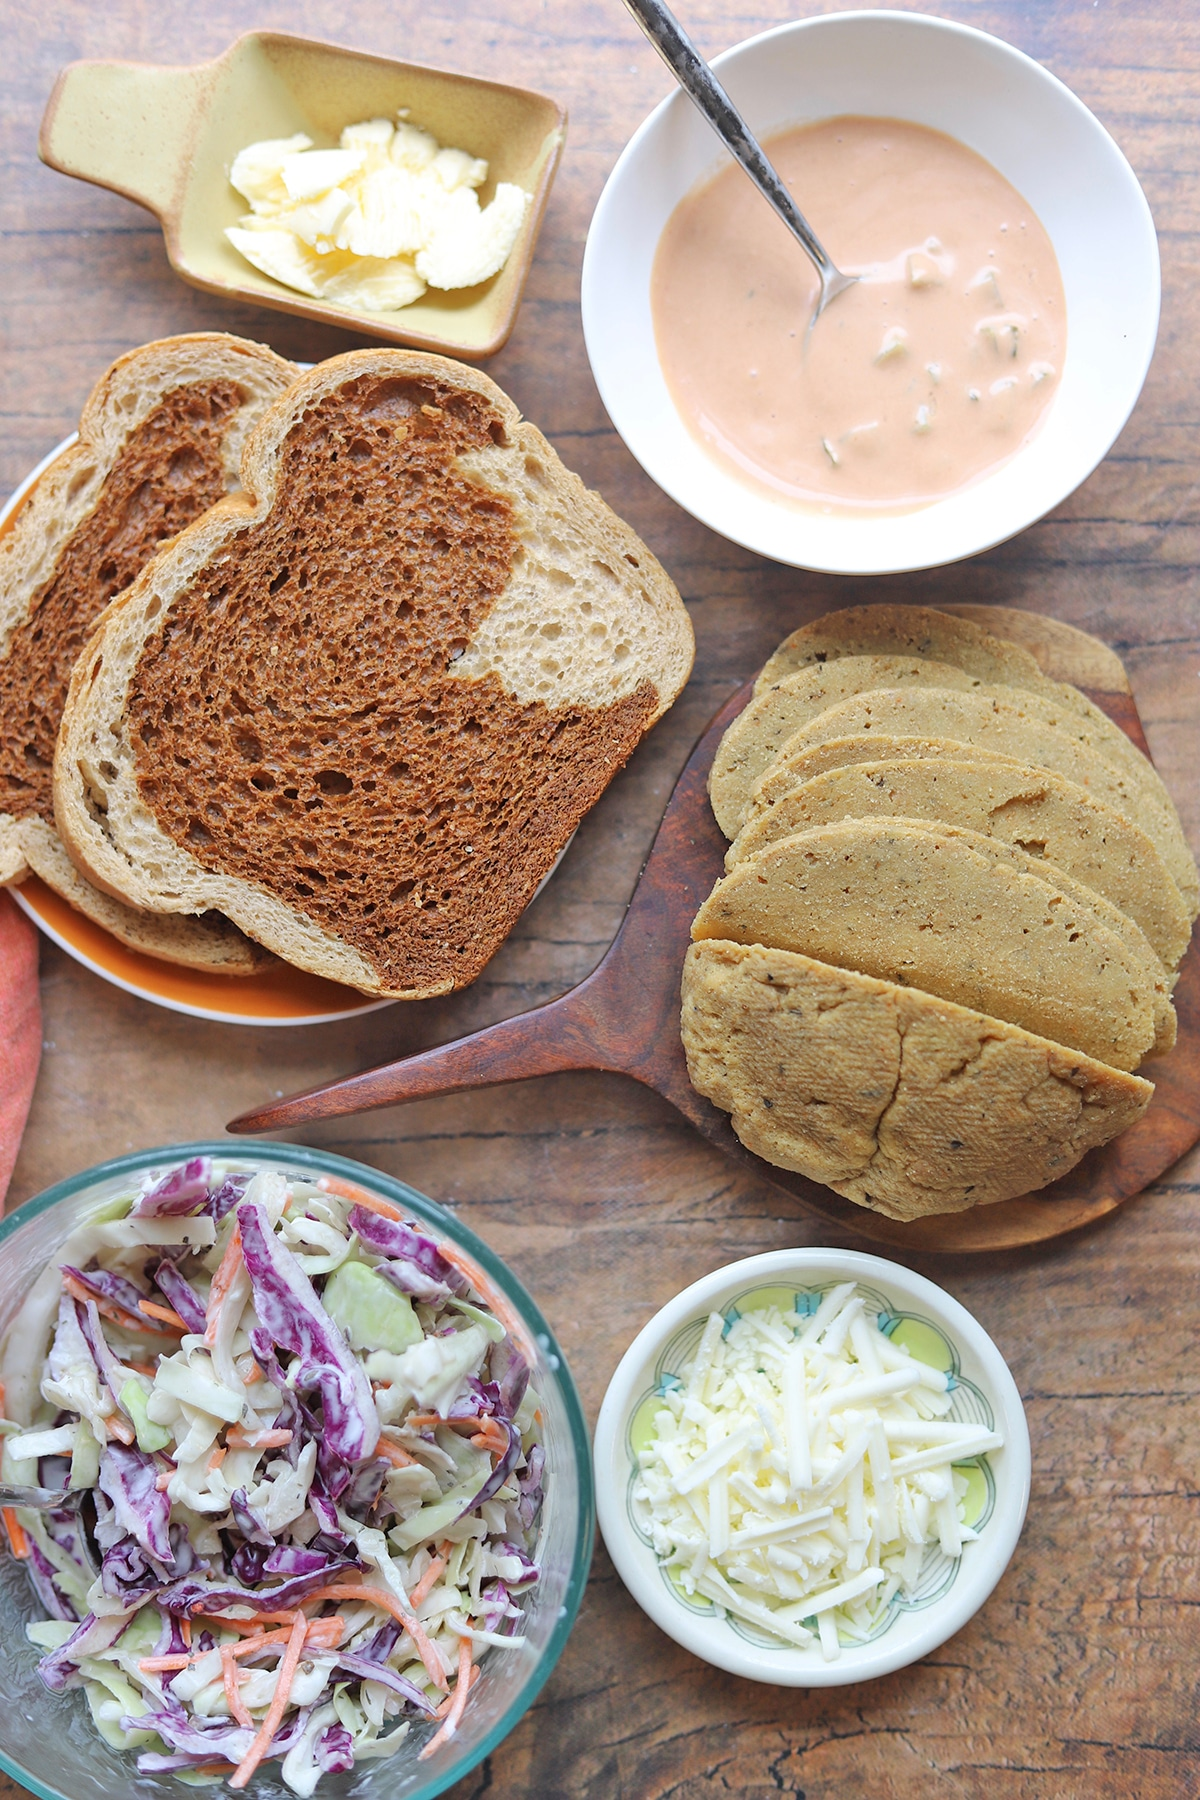 Overhead table with rye bread, Thousand Island dressing, butter, coleslaw, seitan, and shredded cheese.